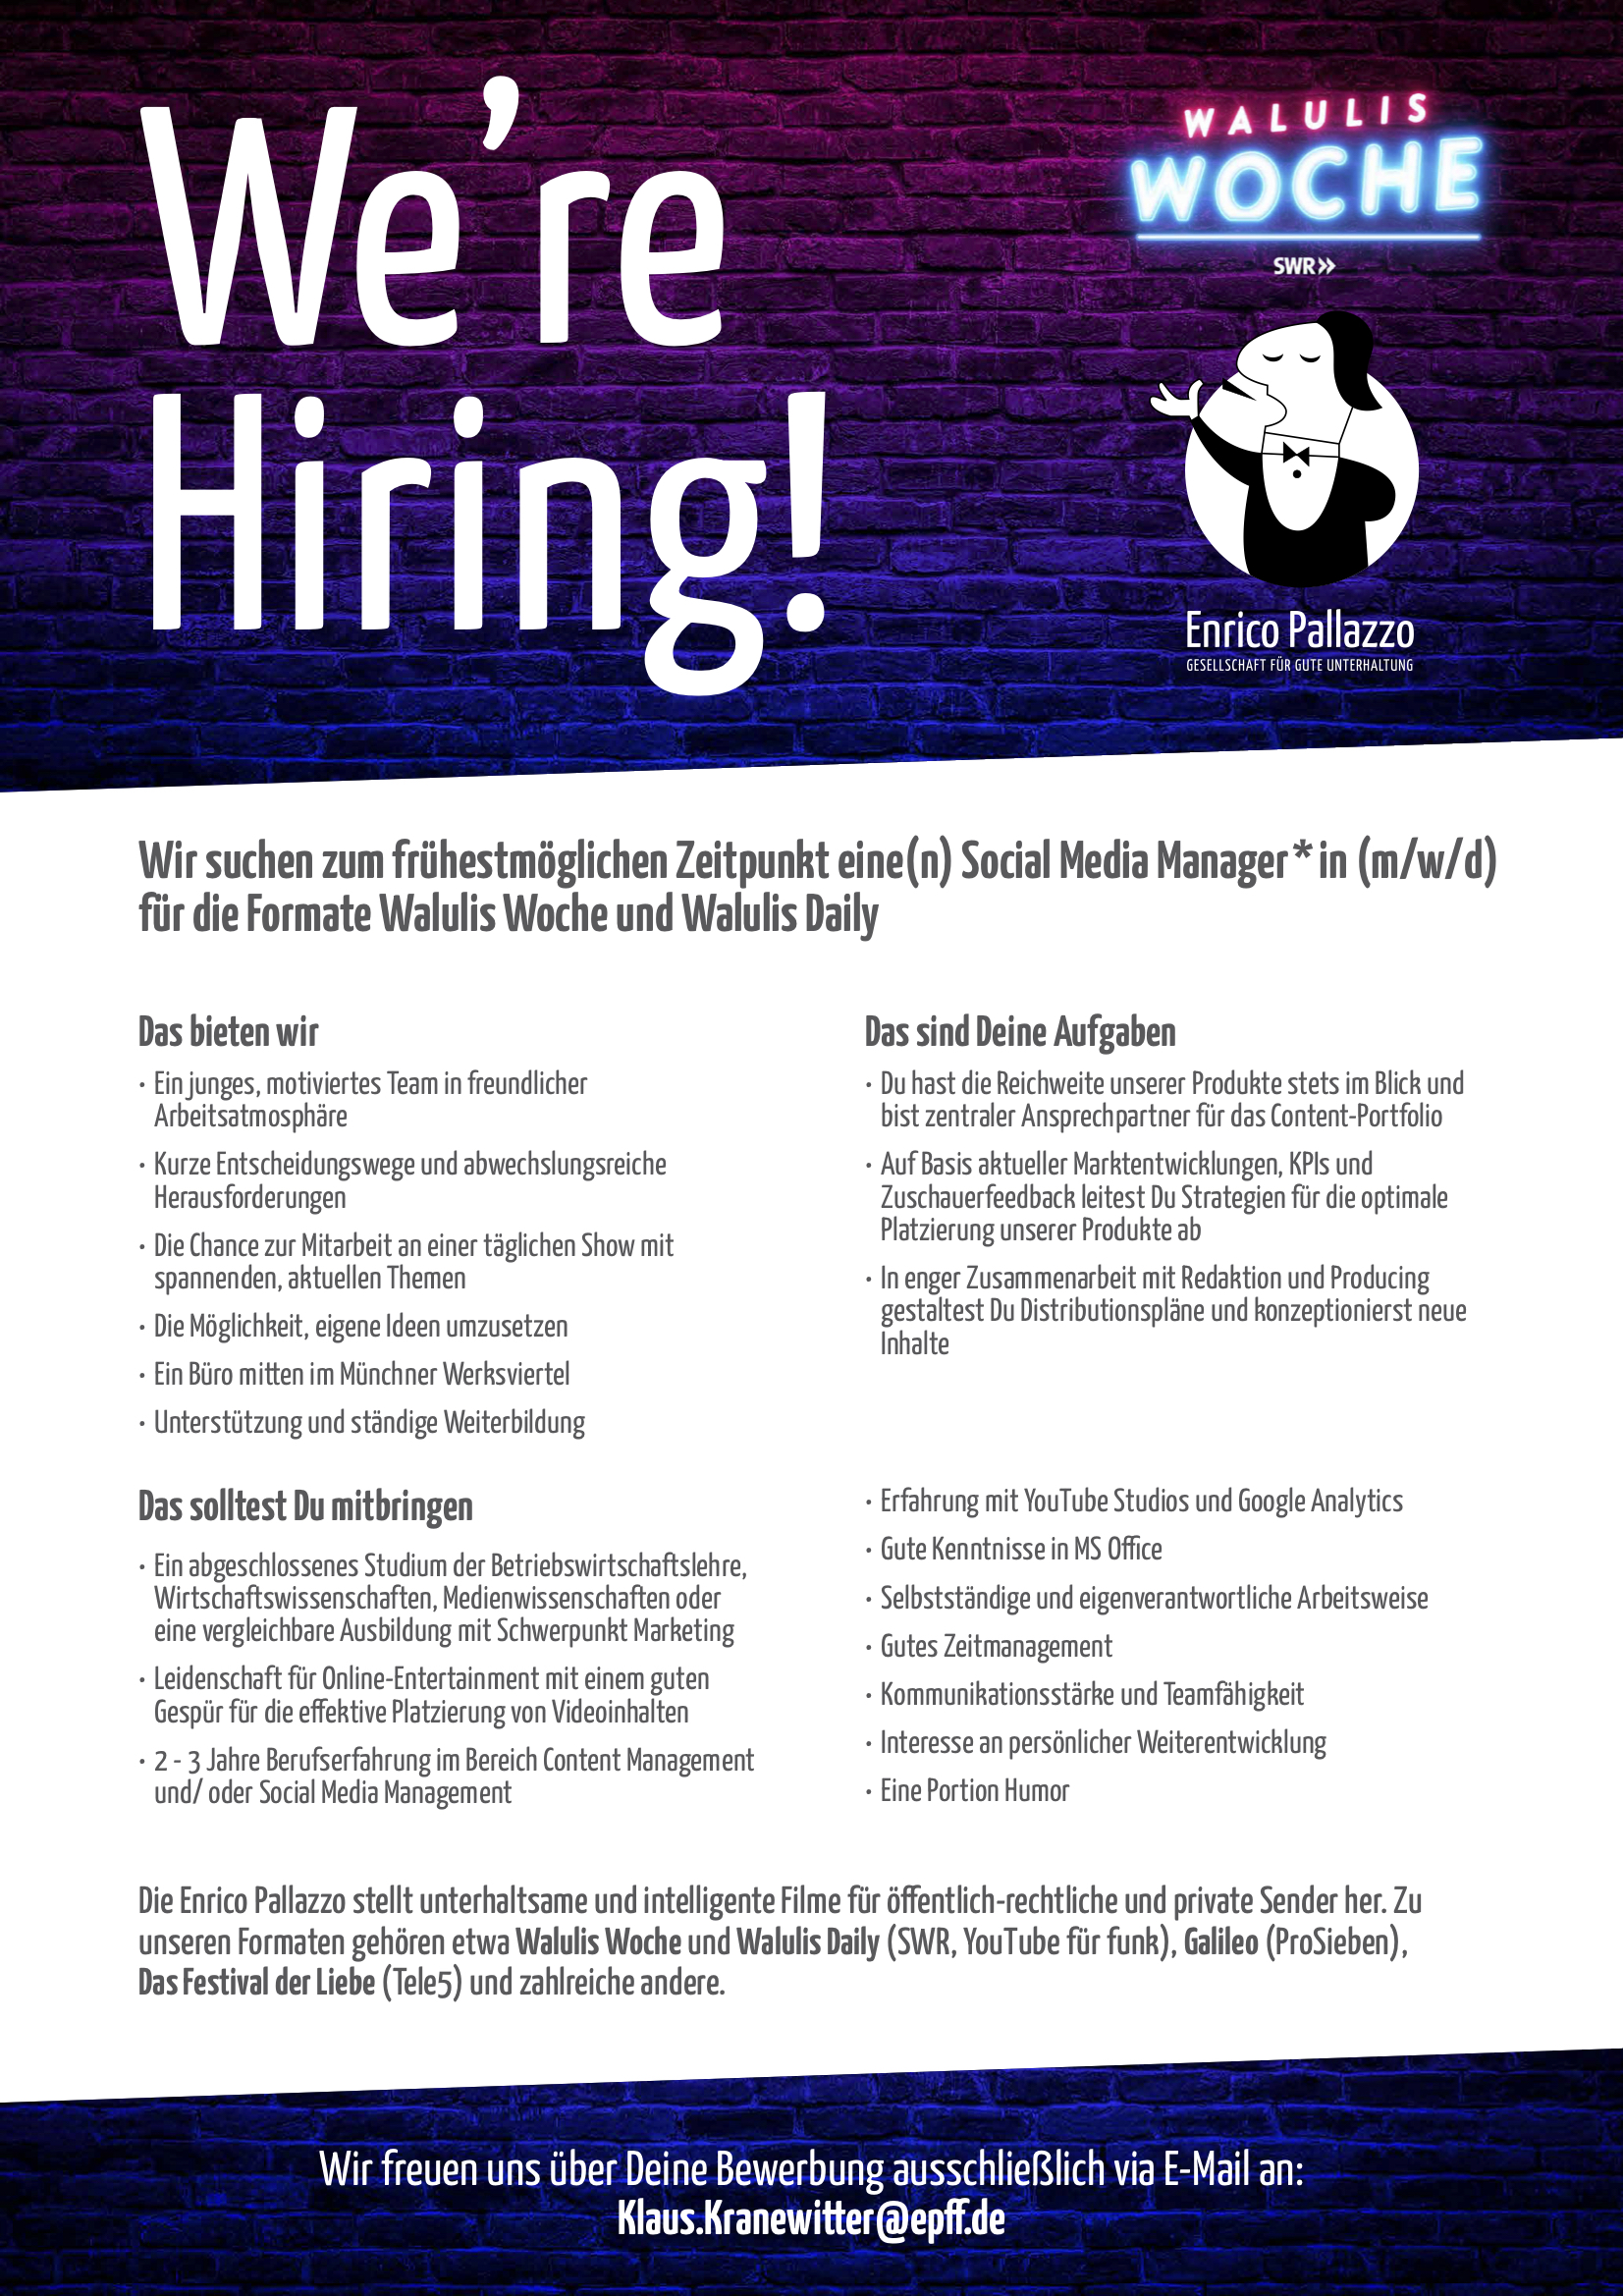 Social Media Manager*in (m/w/d) für Walulis Woche und Walulis Daily